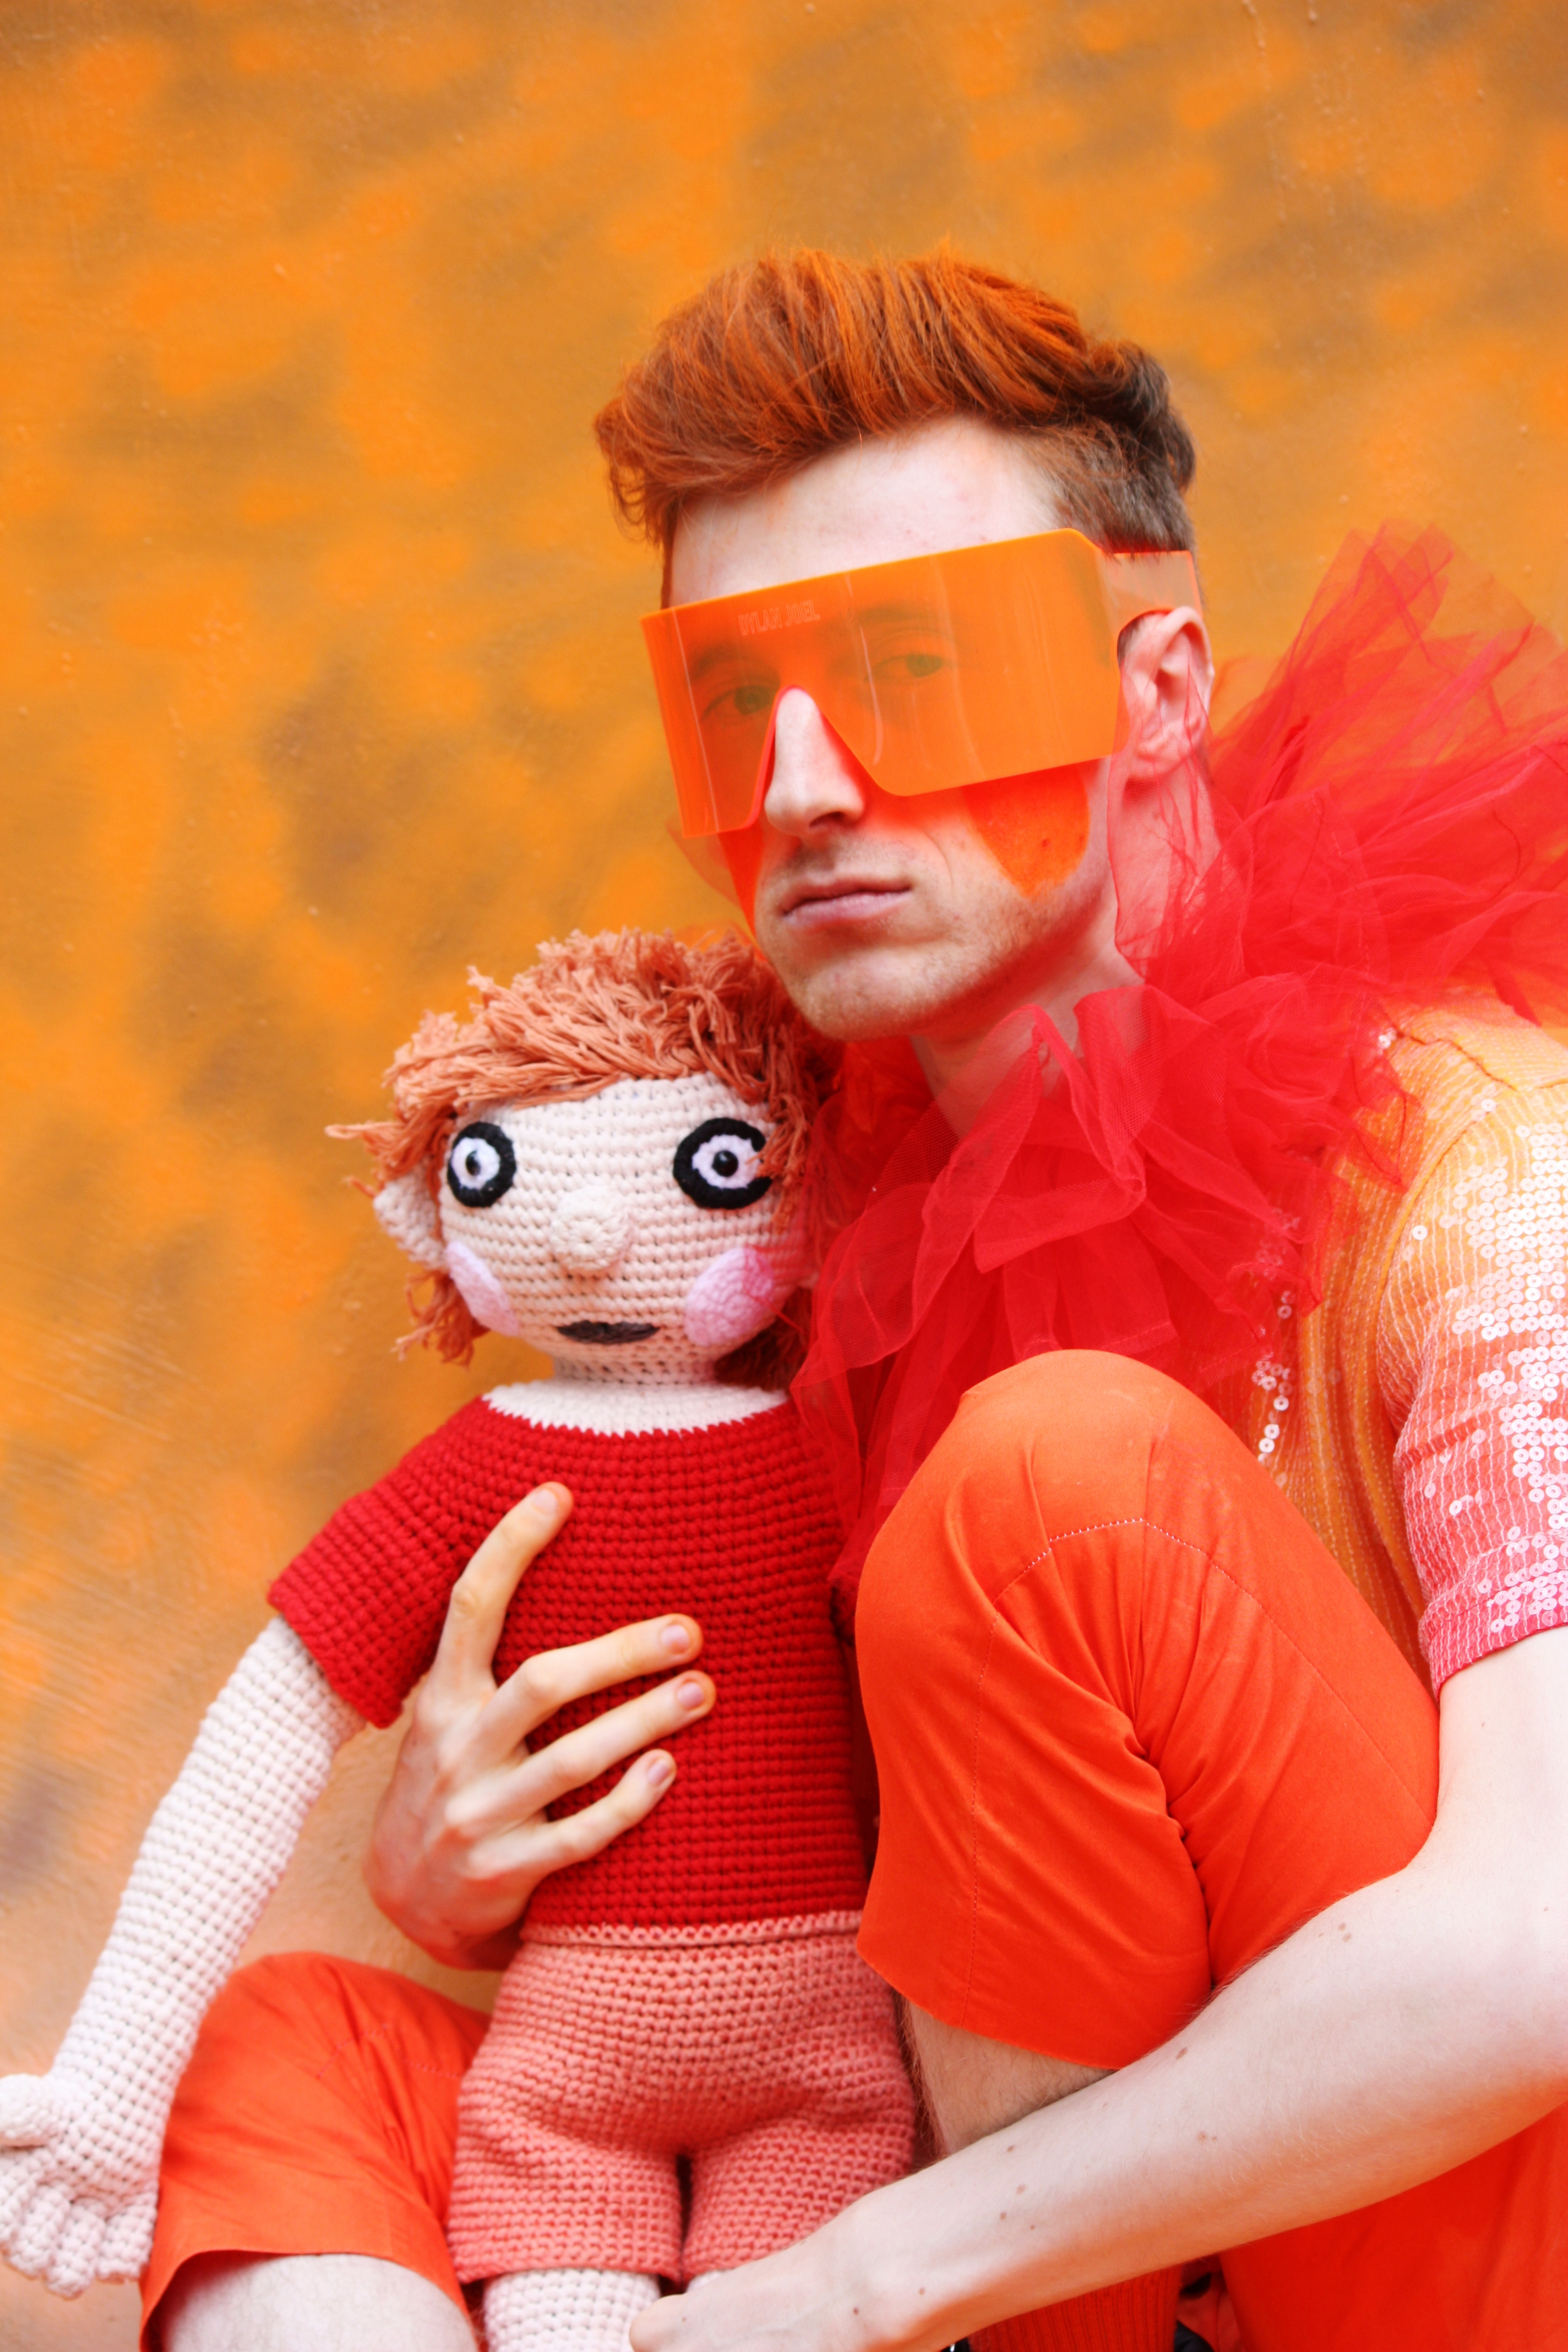 ID: [George is a white, autistic individual with short orange hair dressed in orange clothes, of various textures, sequins, velour, wool, whilst clutching a doll in an affectionate embrace and wearing an orange visor. This image mimics the way a gibbon clutches their baby]